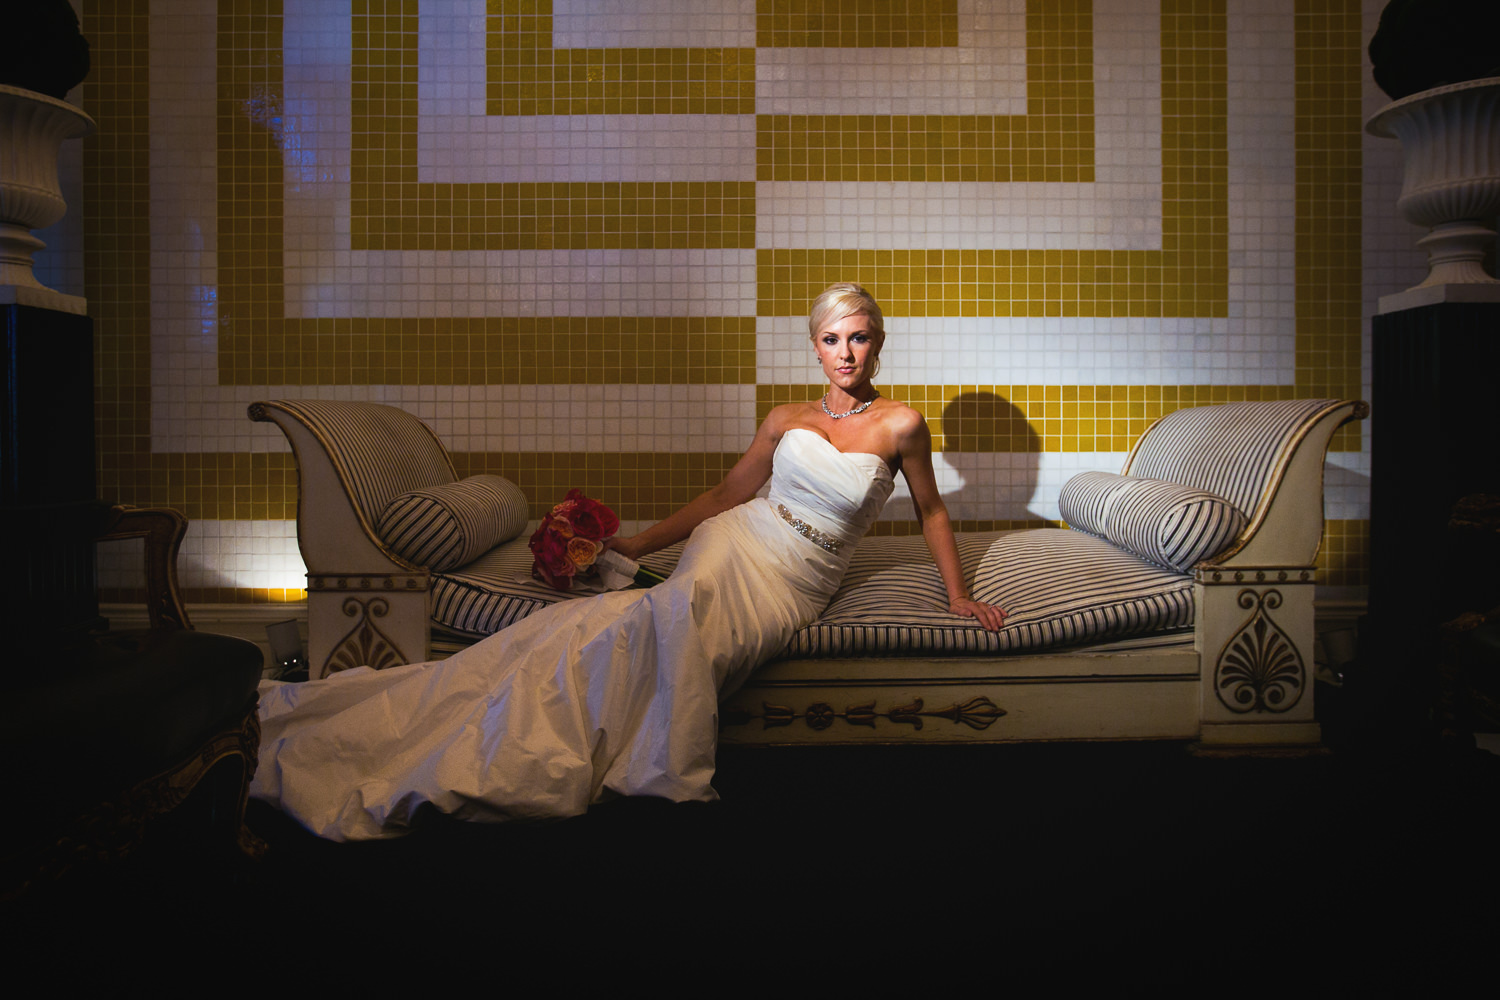 Avalon Palm Springs Photographer - Bride lounging on couch